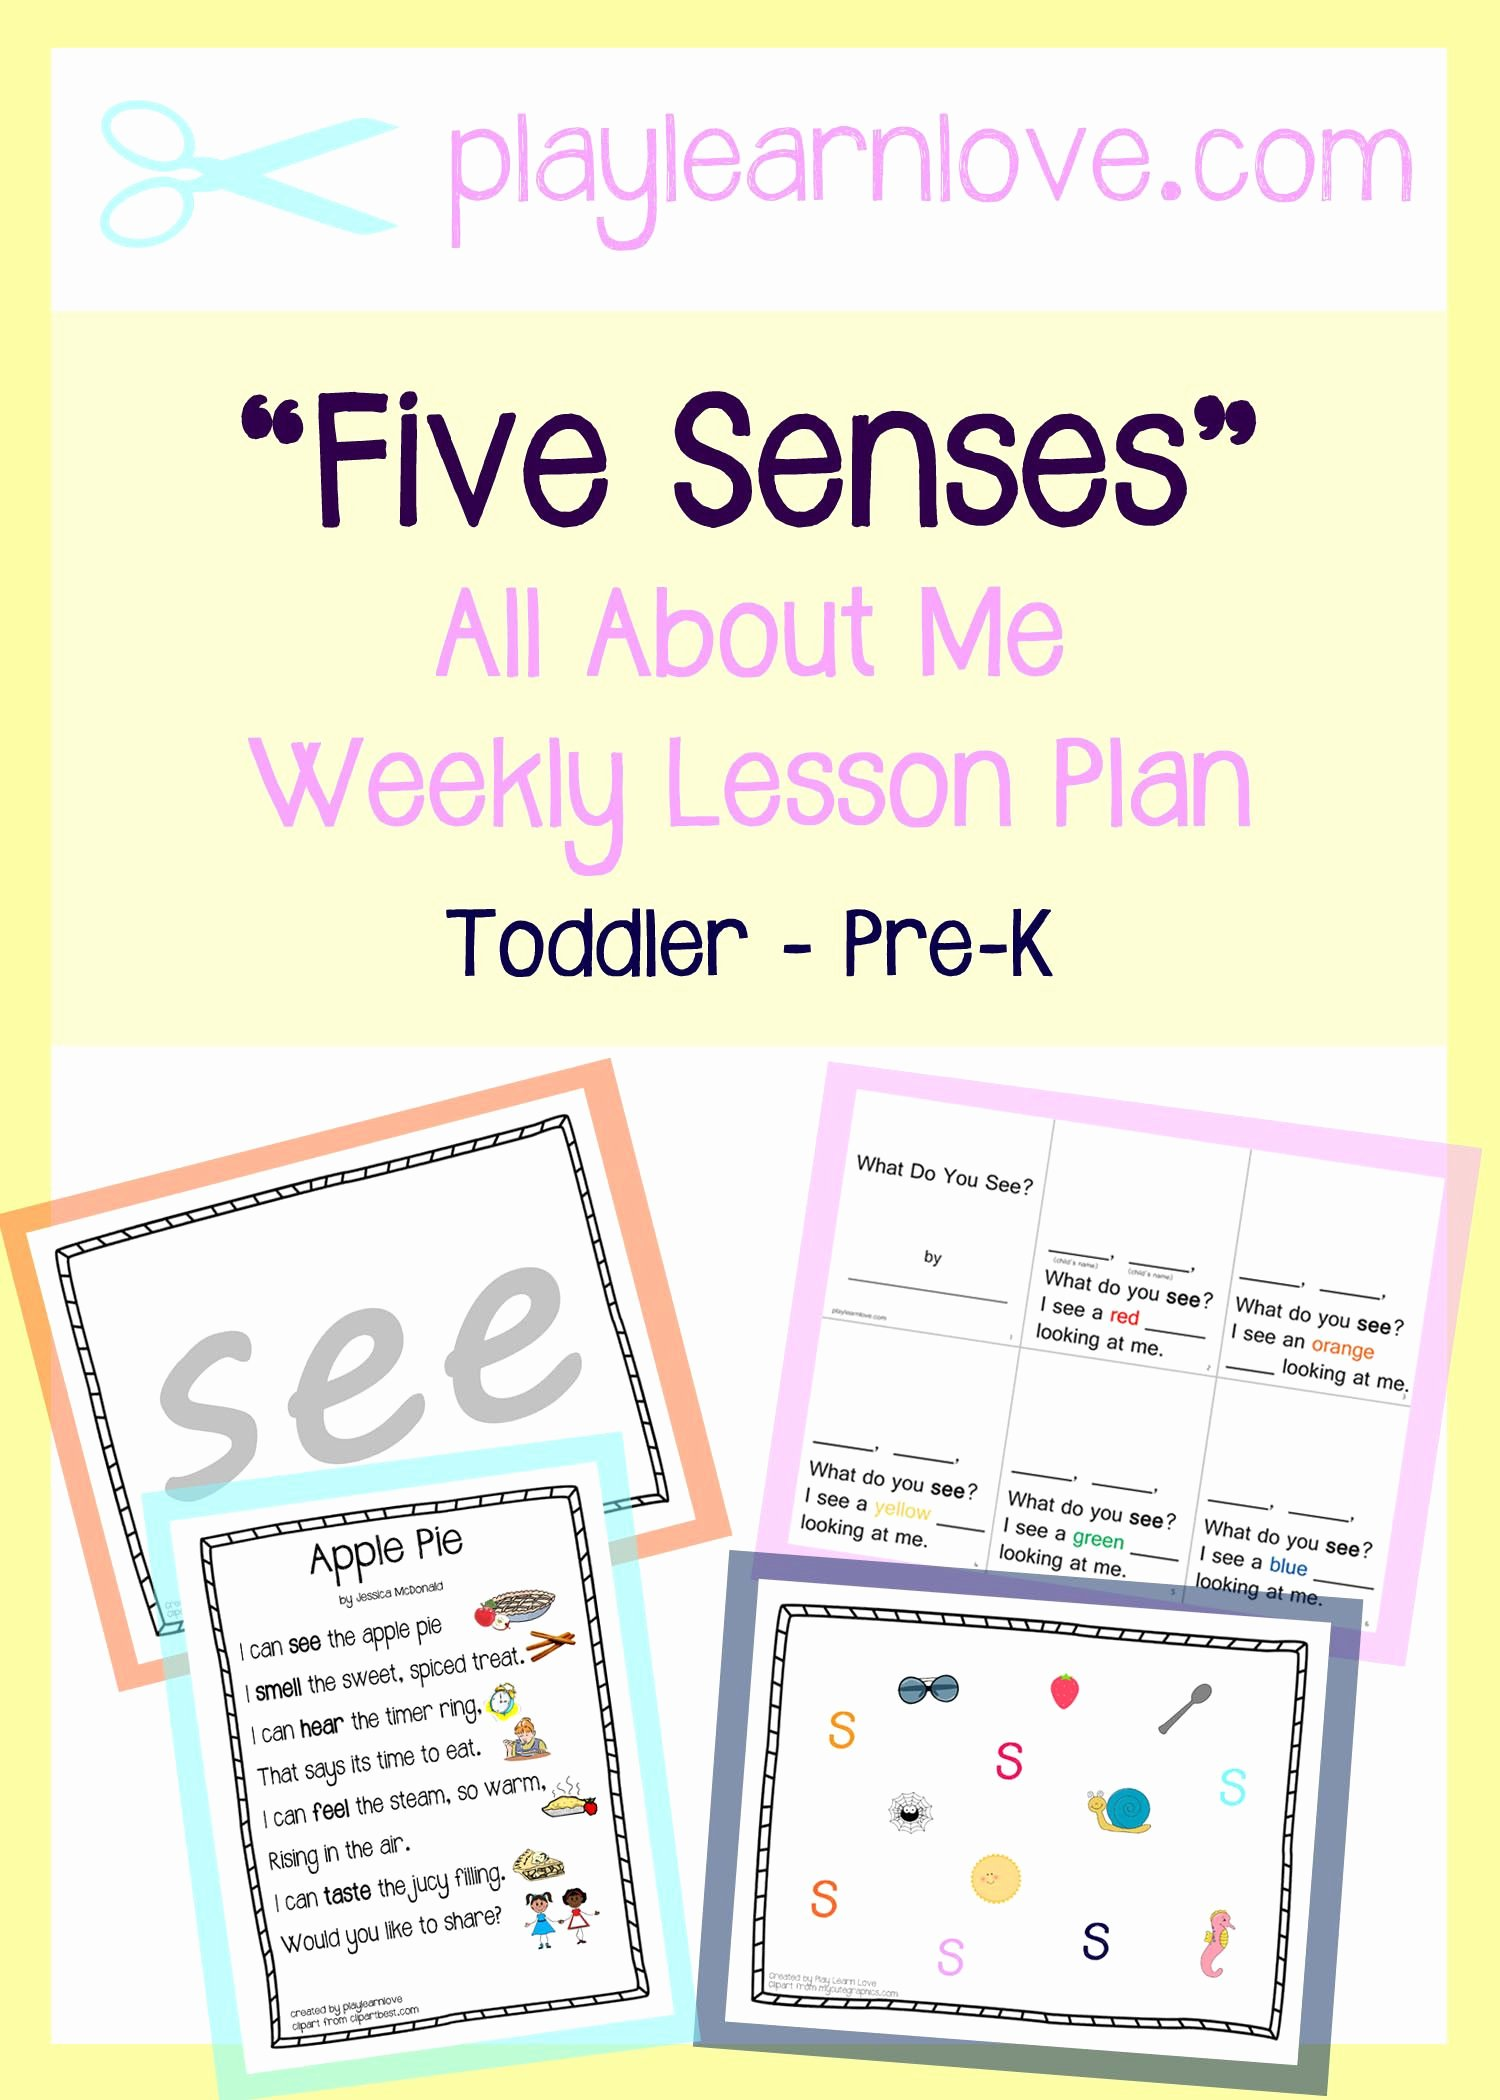 Toddler Lesson Plan Ideas Luxury Five Senses Lesson Plan Preschool and toddler All